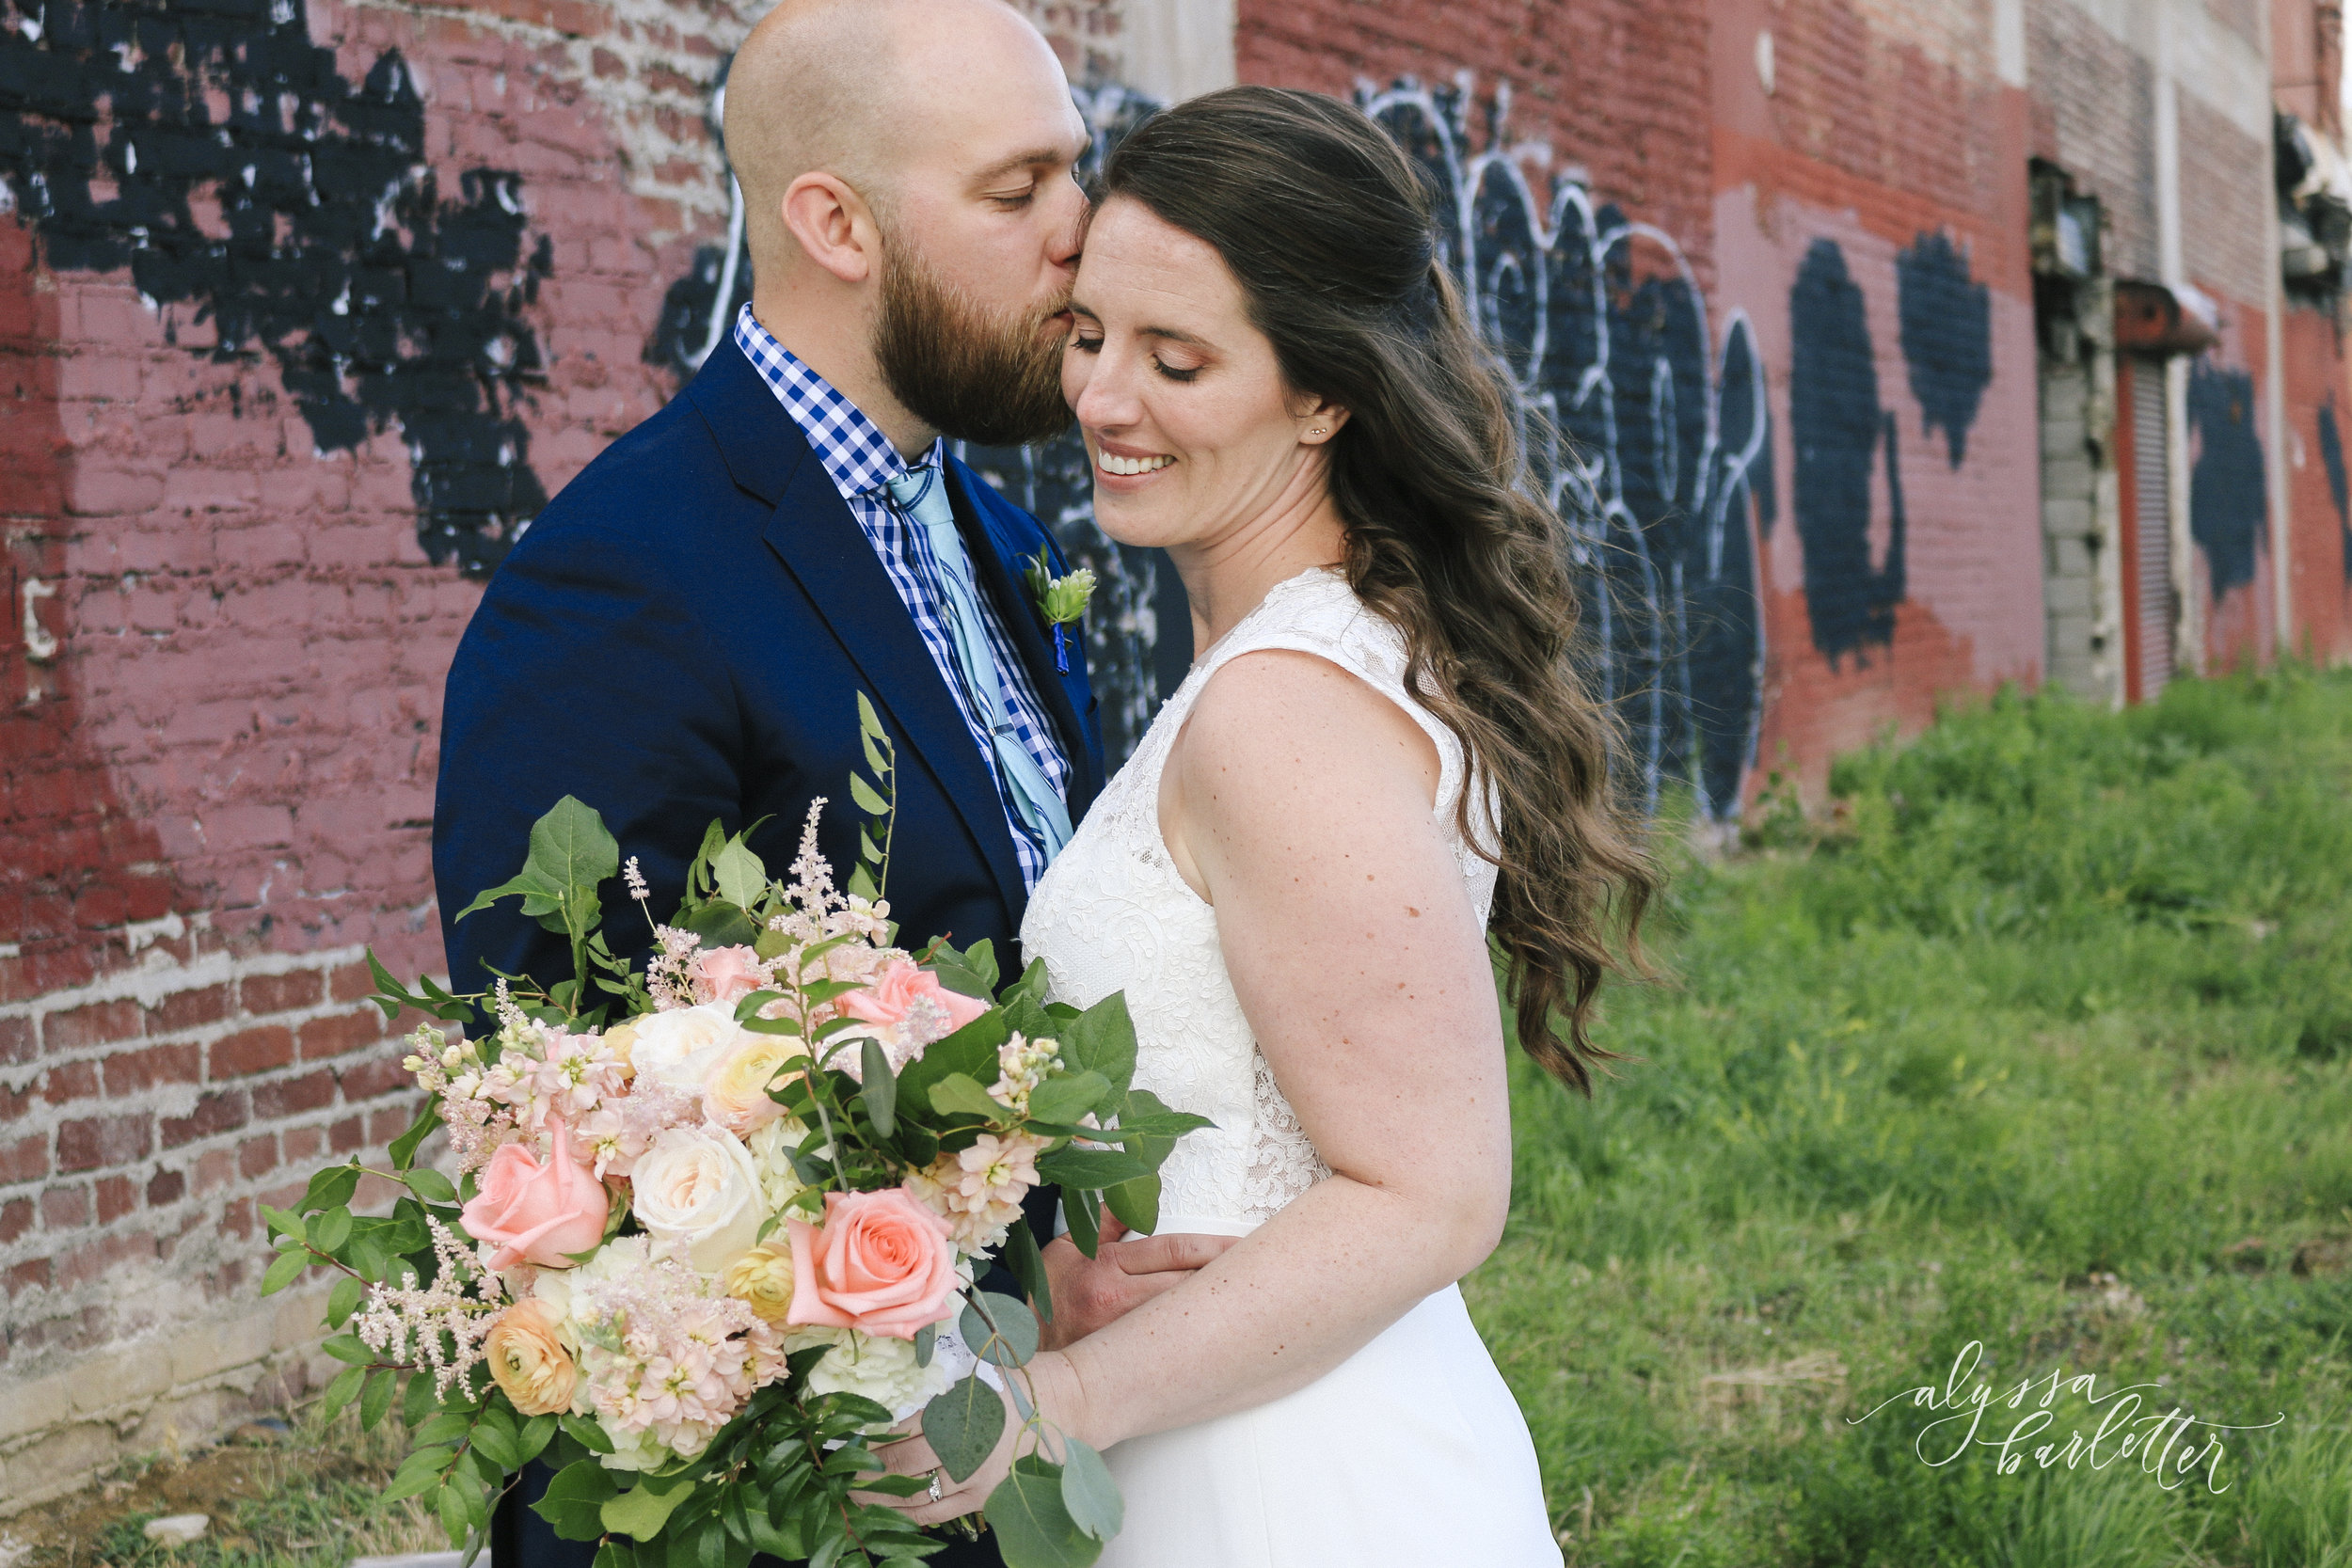 alyssa barletter photography kansas city wedding 2016 main courtney and brian-1-33.jpg